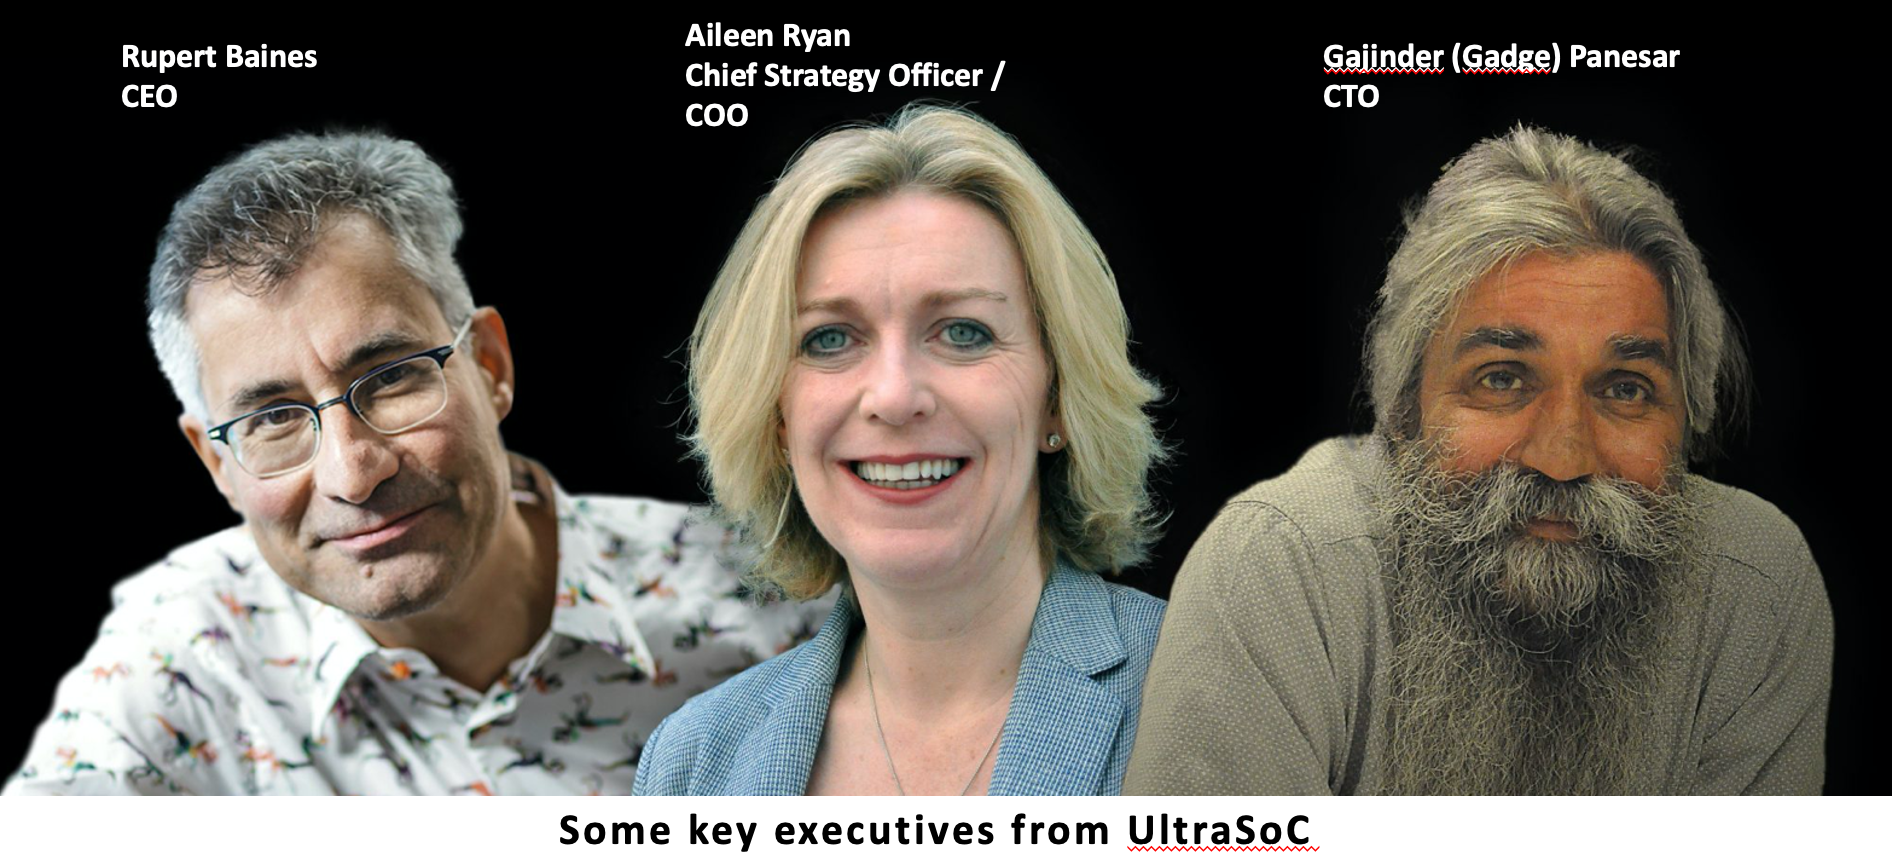 Some Key Executives from UltraSoC